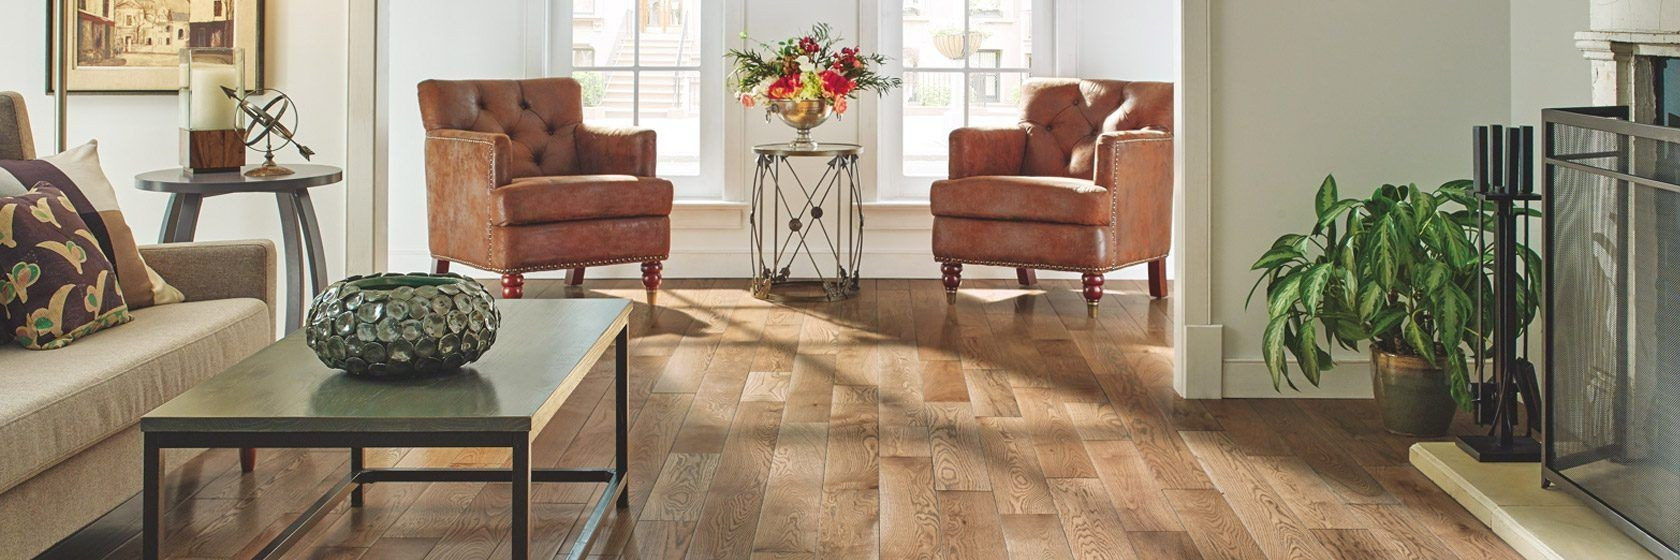 2 1 4 Oak Hardwood Flooring Of 19 Best Of Hardwood Floor Tile Stock Dizpos Com Regarding Hardwood Floor Tile Best Of Oak solid Hardwood Hay Ground Saktb39l4hgw is Part Of the Pics